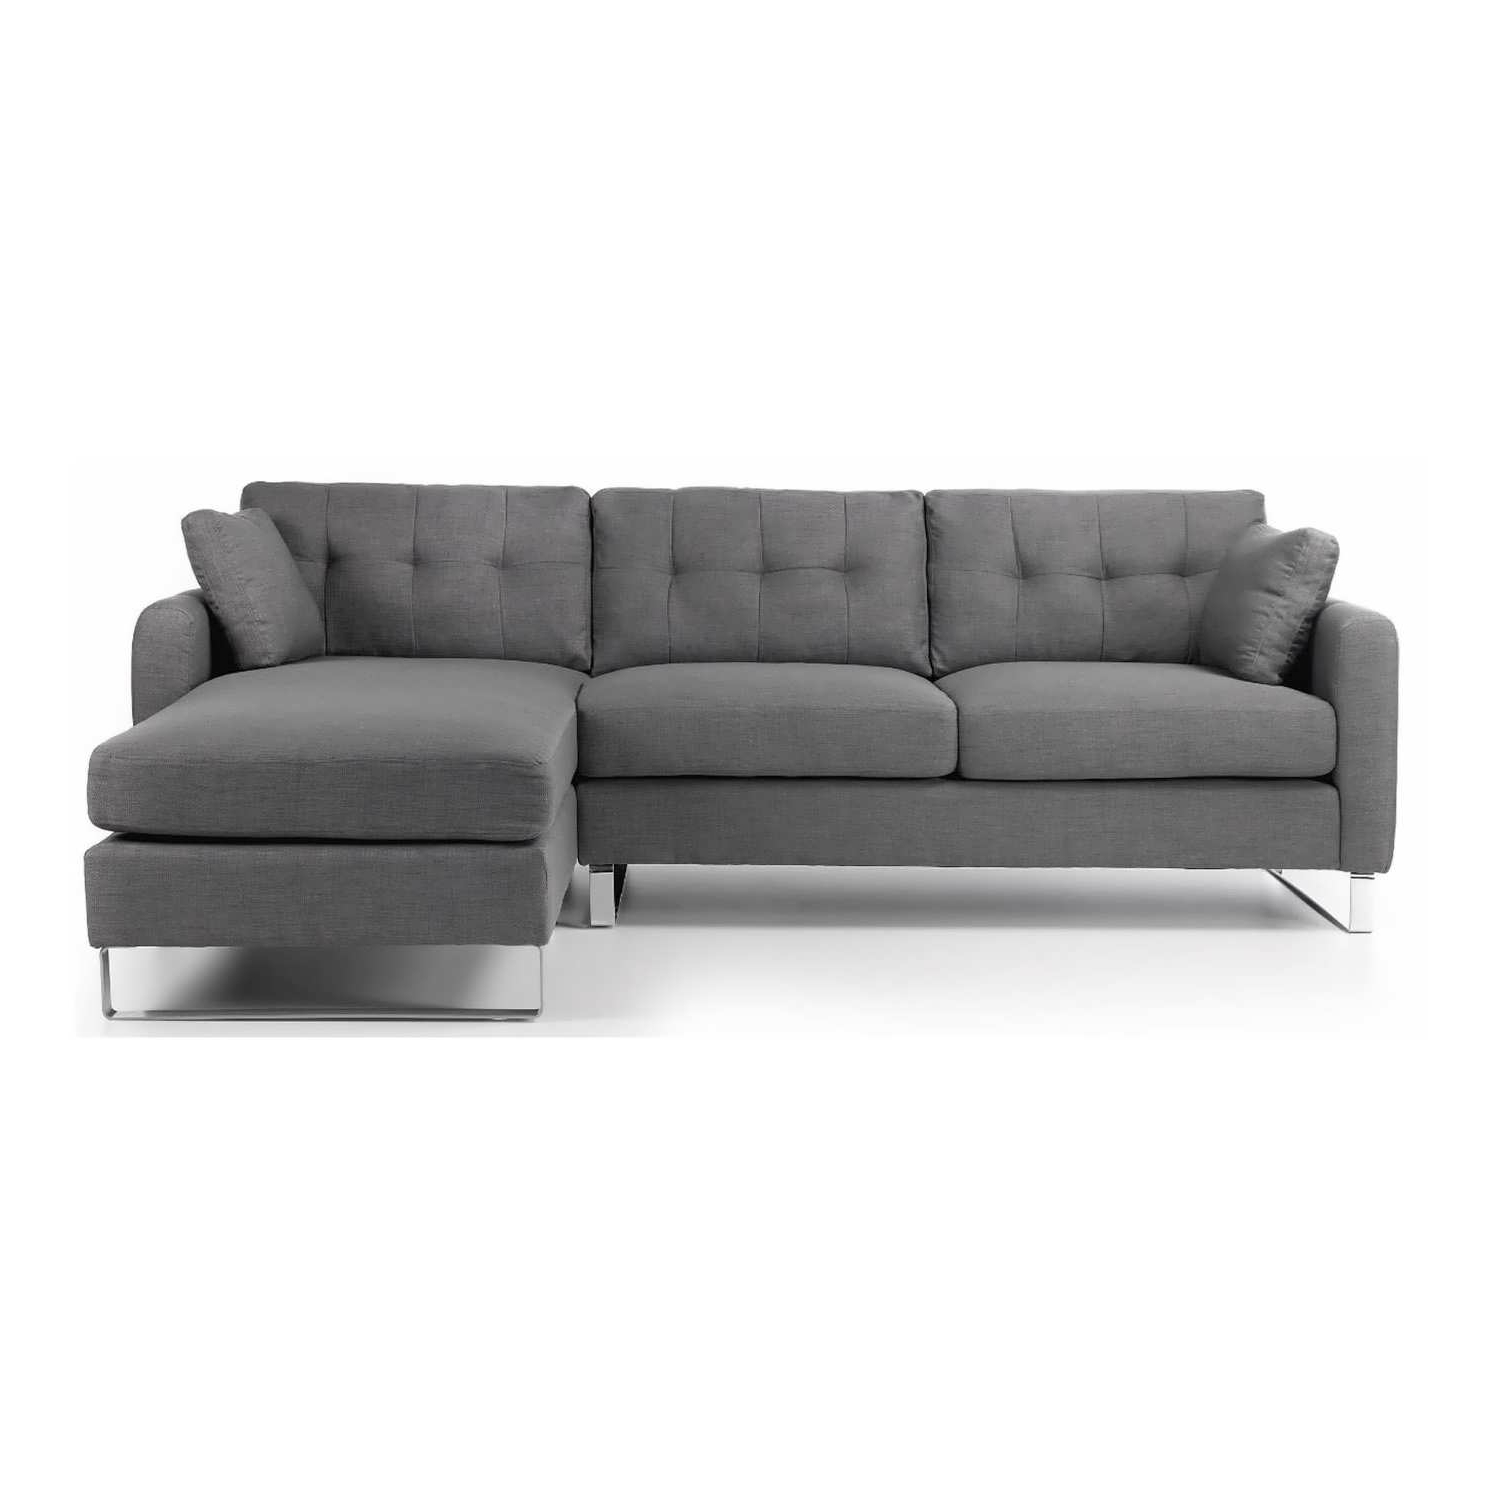 Sofa : Brown Leather Sectional Sectional Sofa Bed Small Sofa For Best And Newest Sofa Beds With Chaise (View 11 of 15)